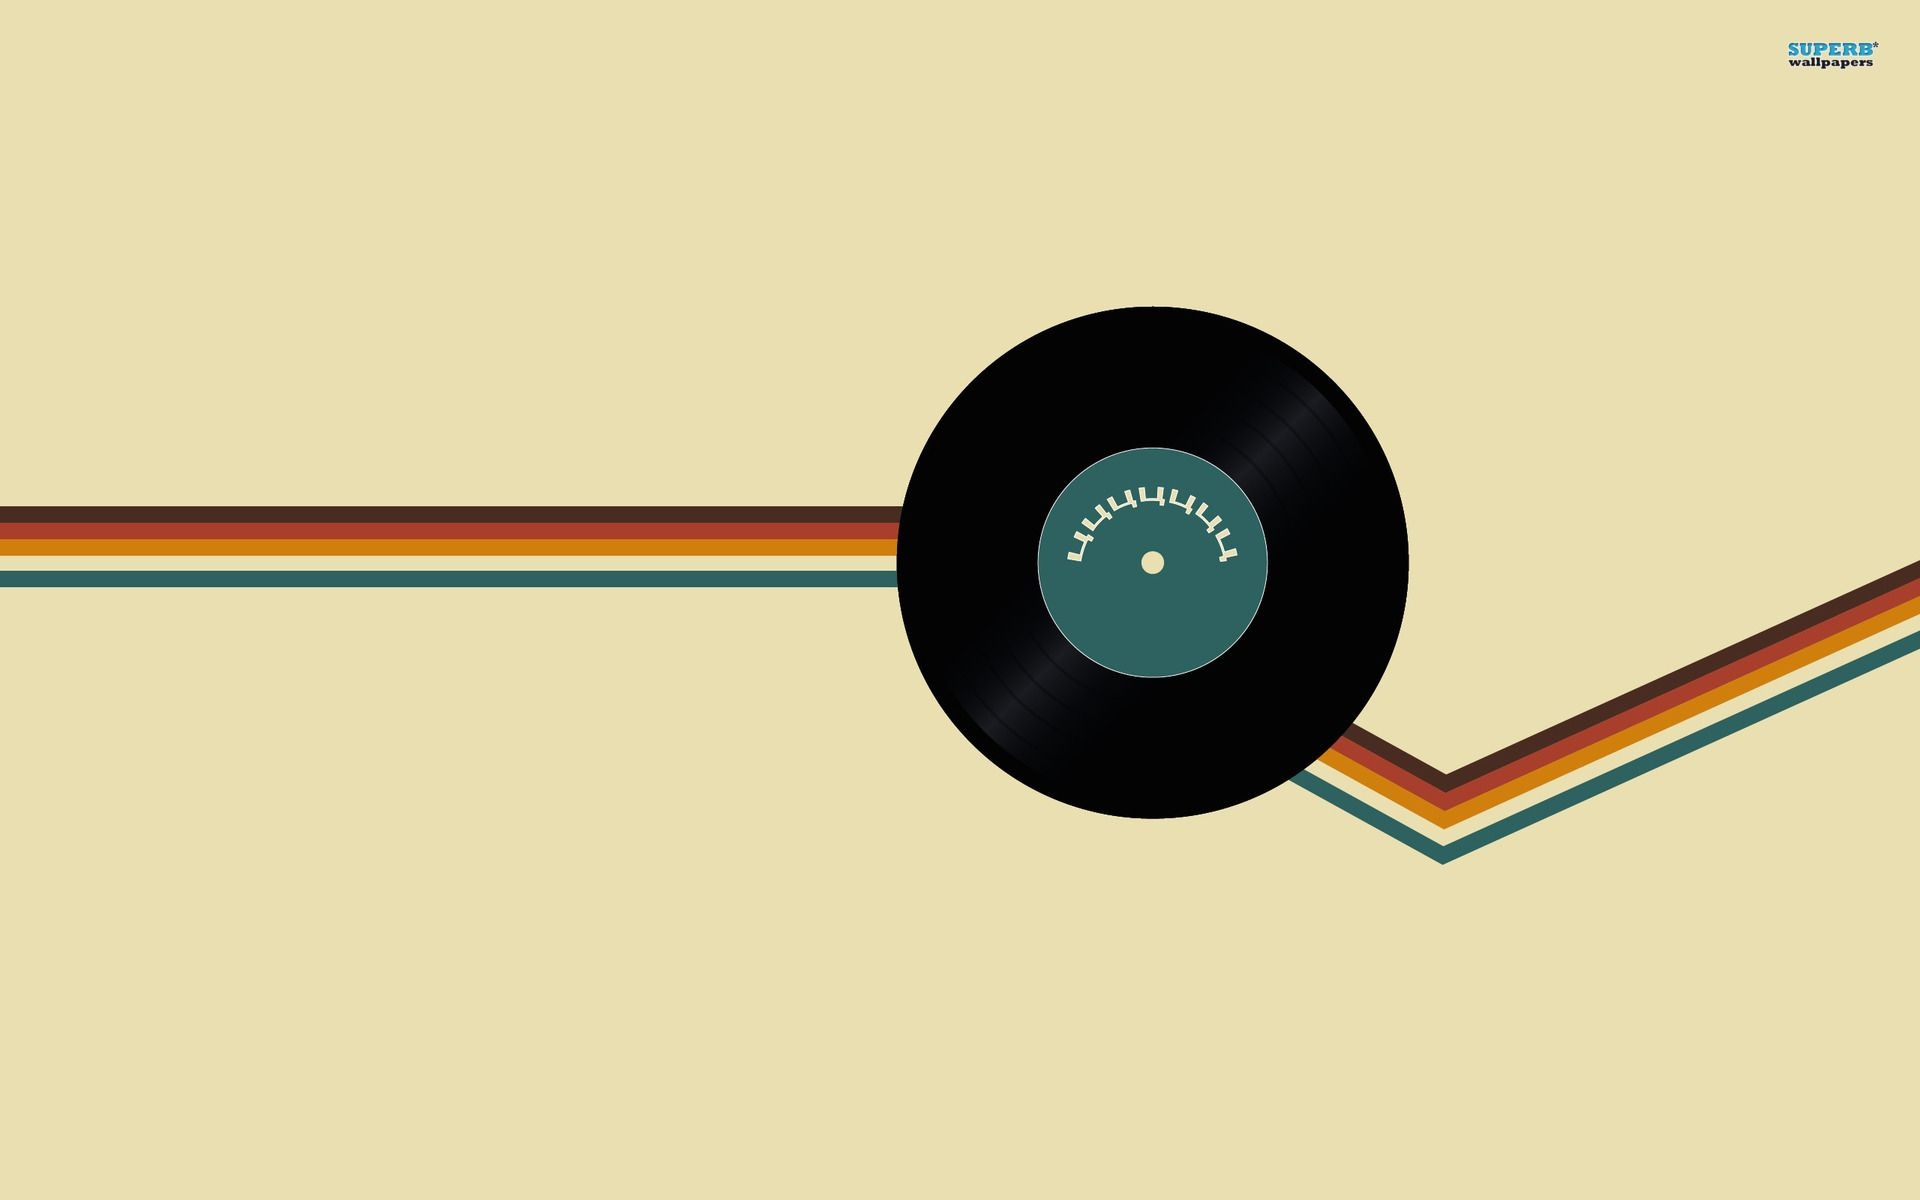 Retro Music Wallpapers Full Hd Wallpaper Search Retro Wallpaper Music Wallpaper Minimalist Desktop Wallpaper